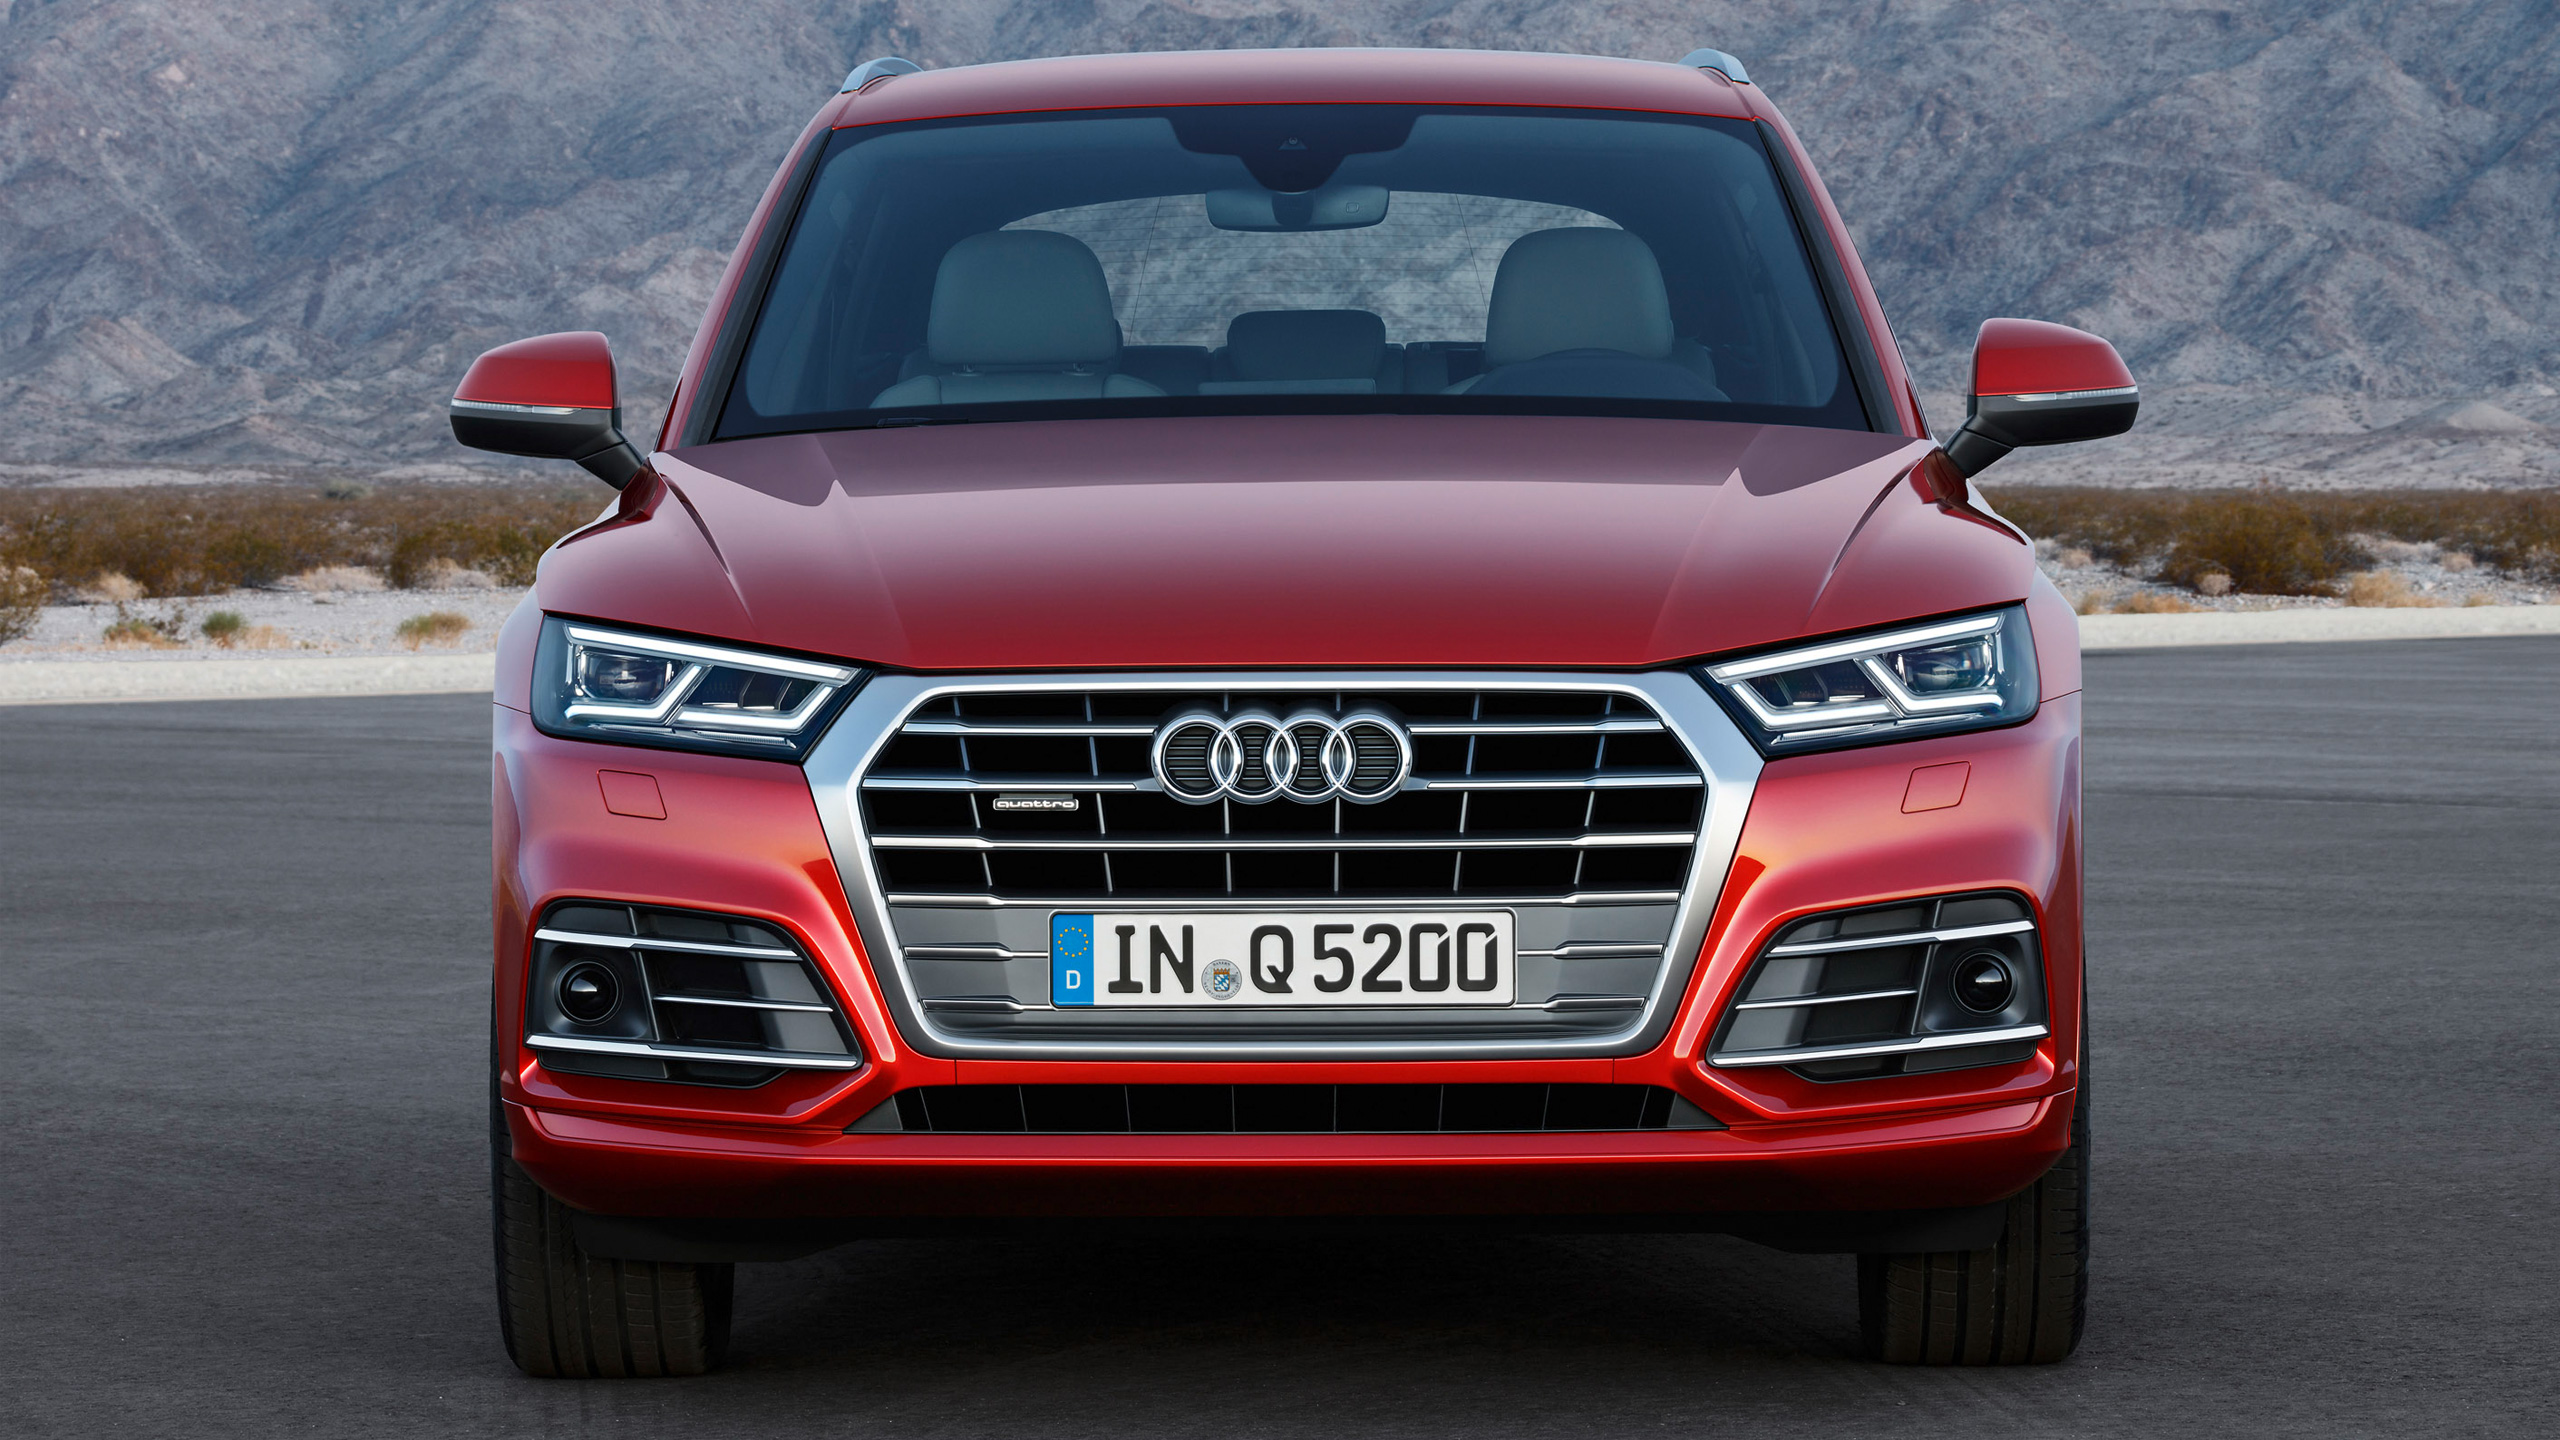 2560x1440 - Audi Q5 Wallpapers 6